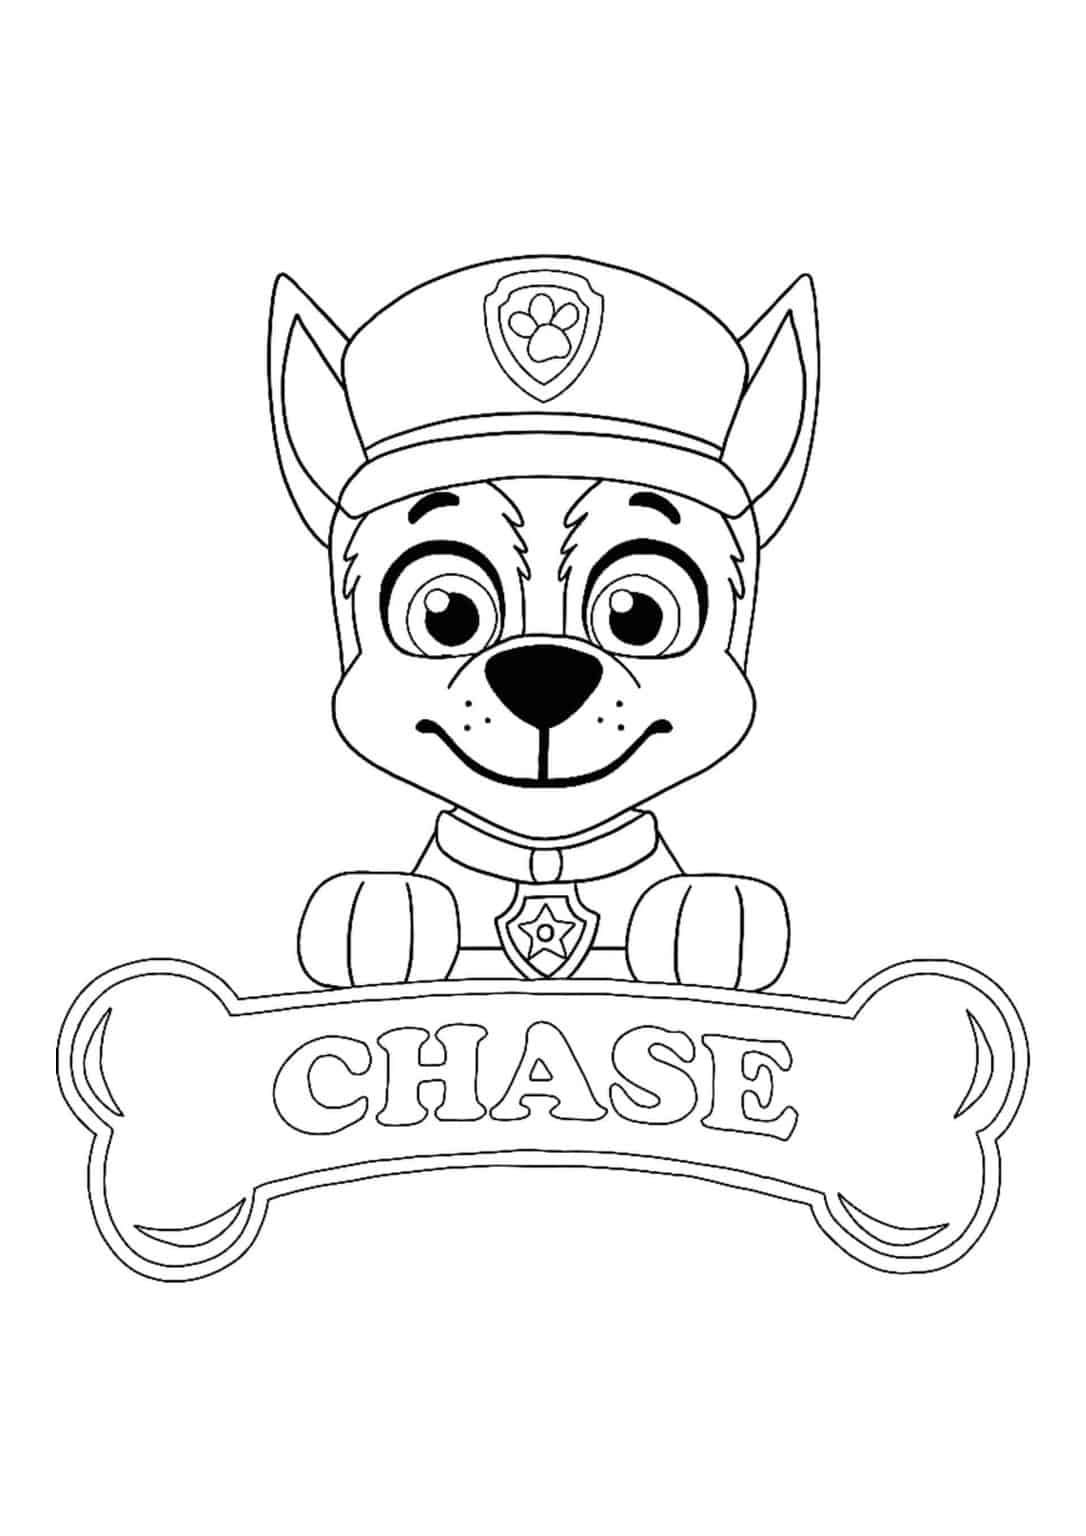 49+ Paw patrol chase badge coloring page info